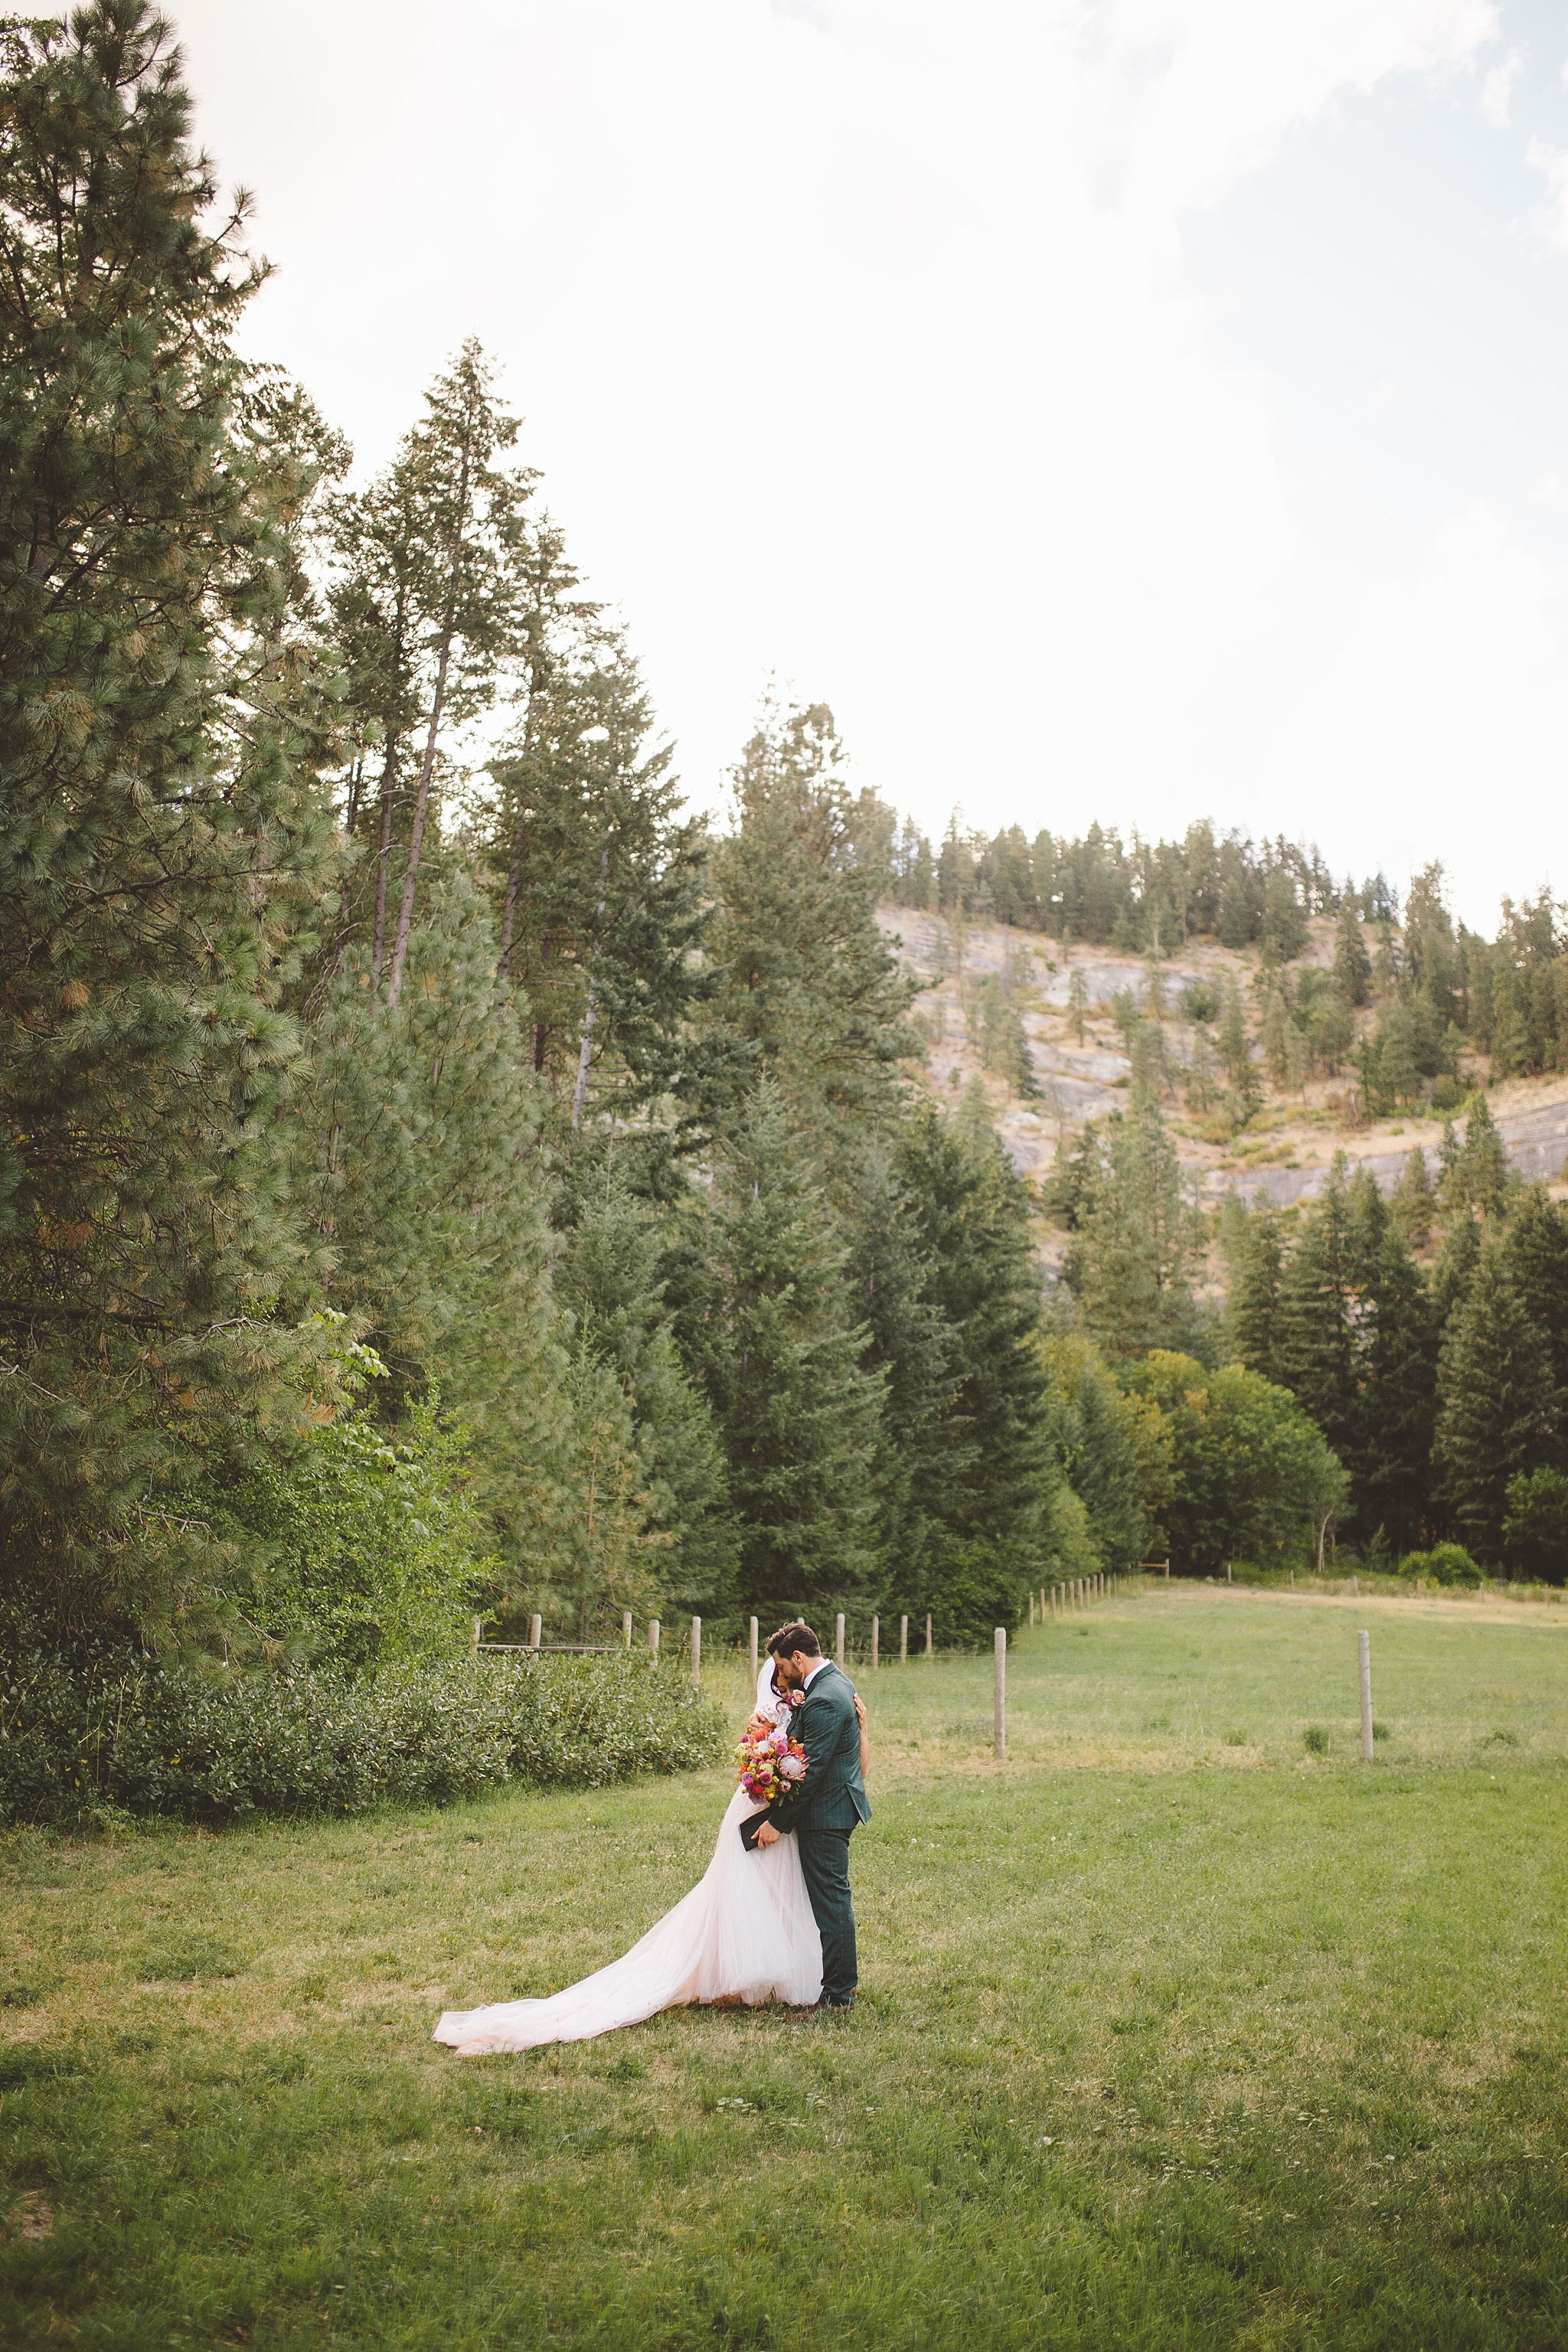 married in the woods of washington